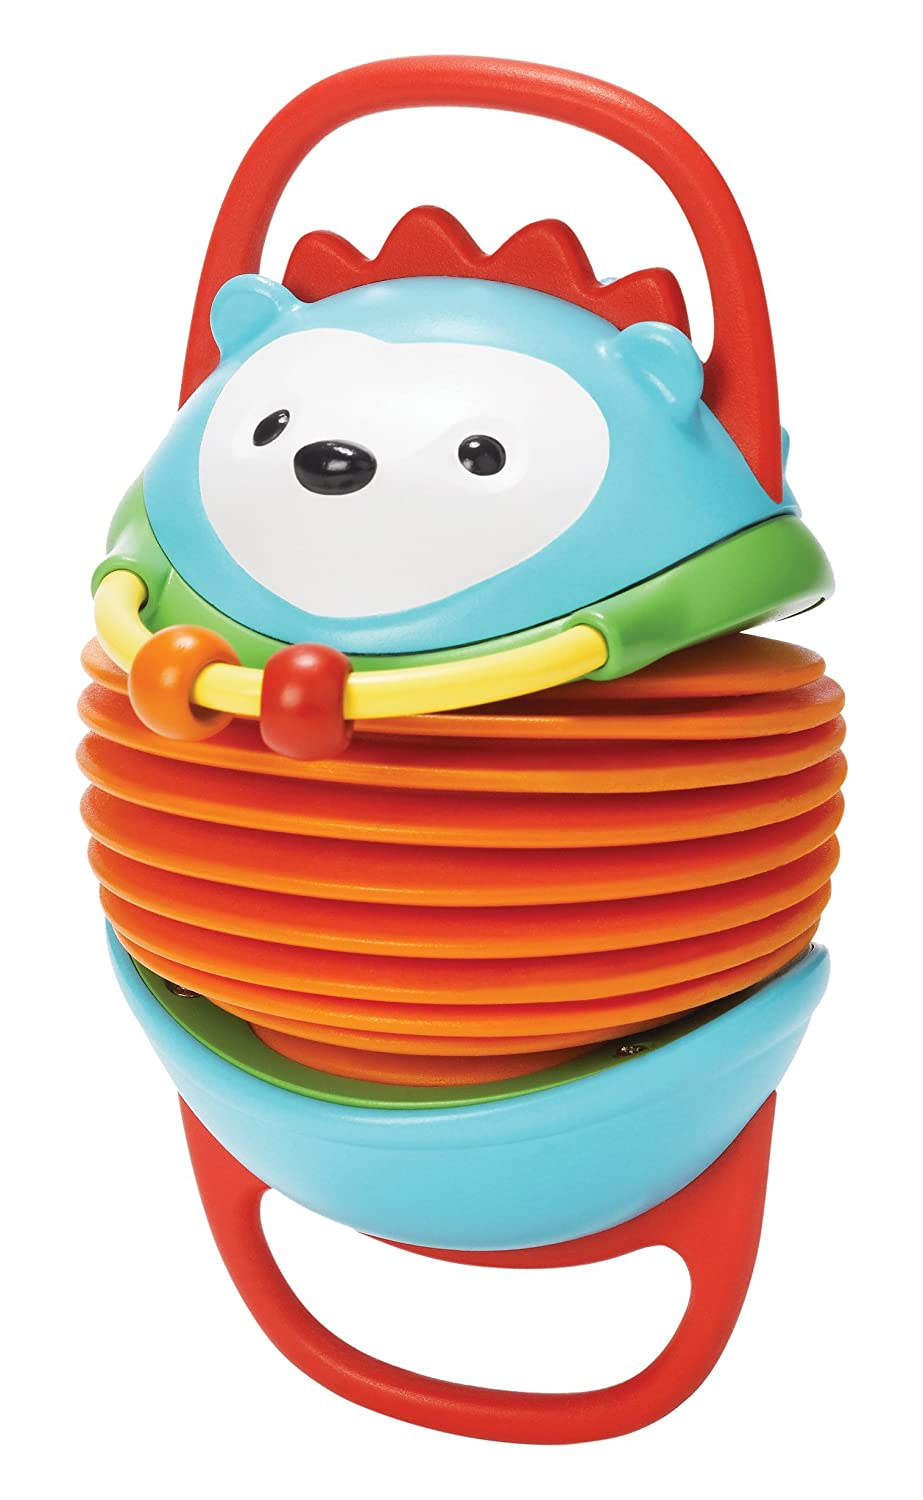 Skip Hop Baby Explore and More Musical Mobile Phone Toy, Owl 303200